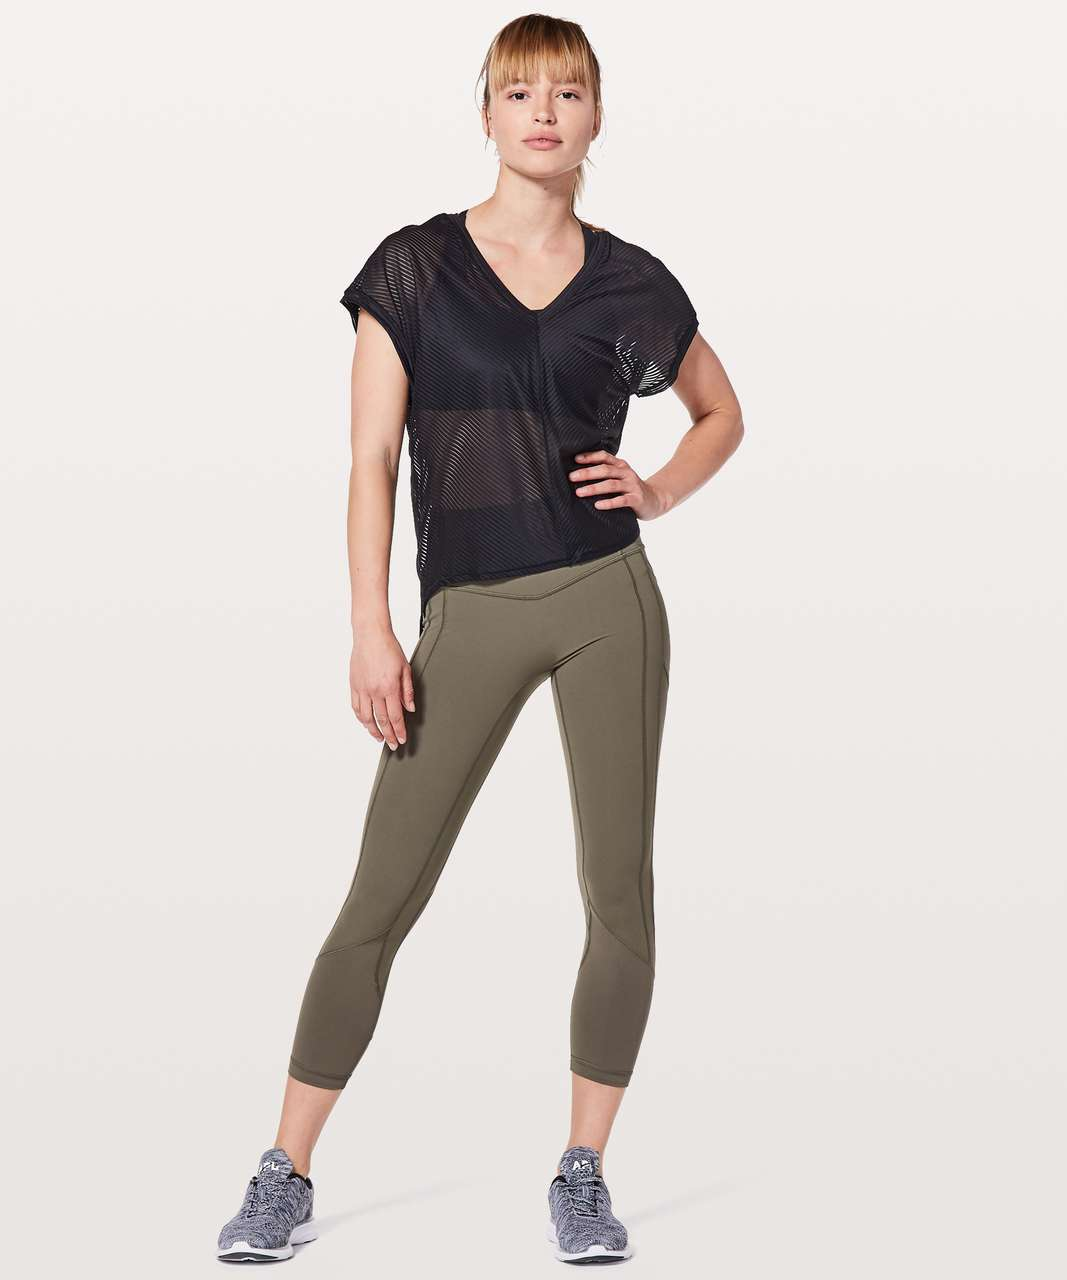 Lululemon Ahead By Miles Short Sleeve - Black